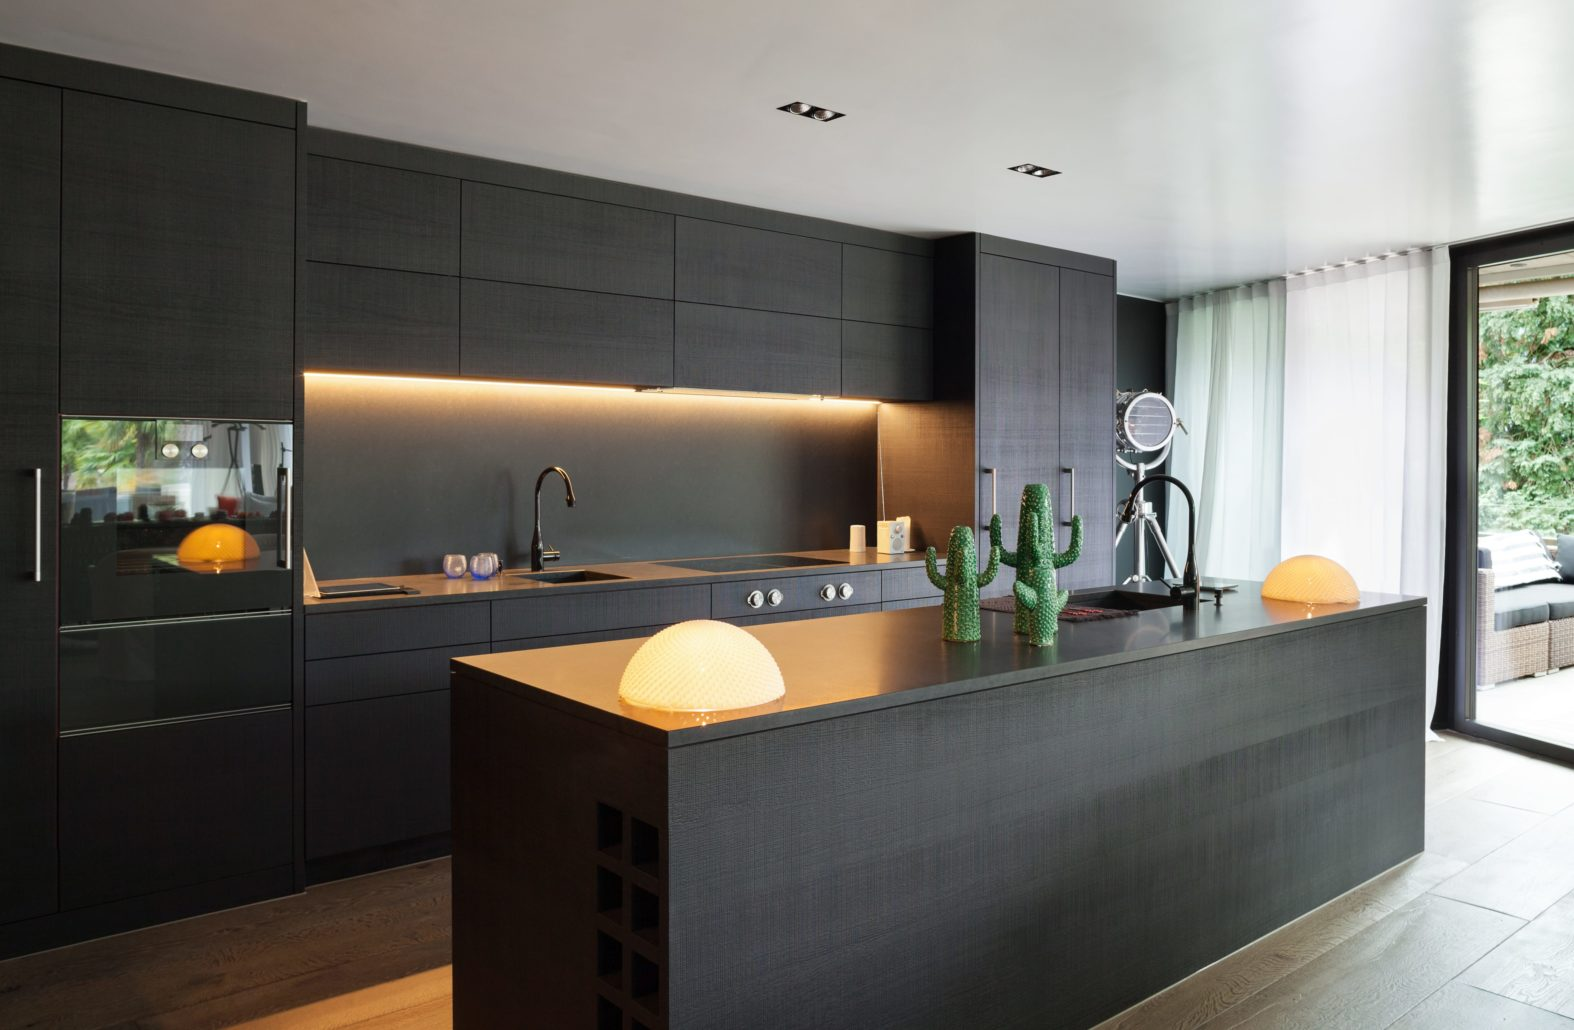 SIMPLE AND MODERN, CUSTOM BUILT TEXTURED KITCHEN